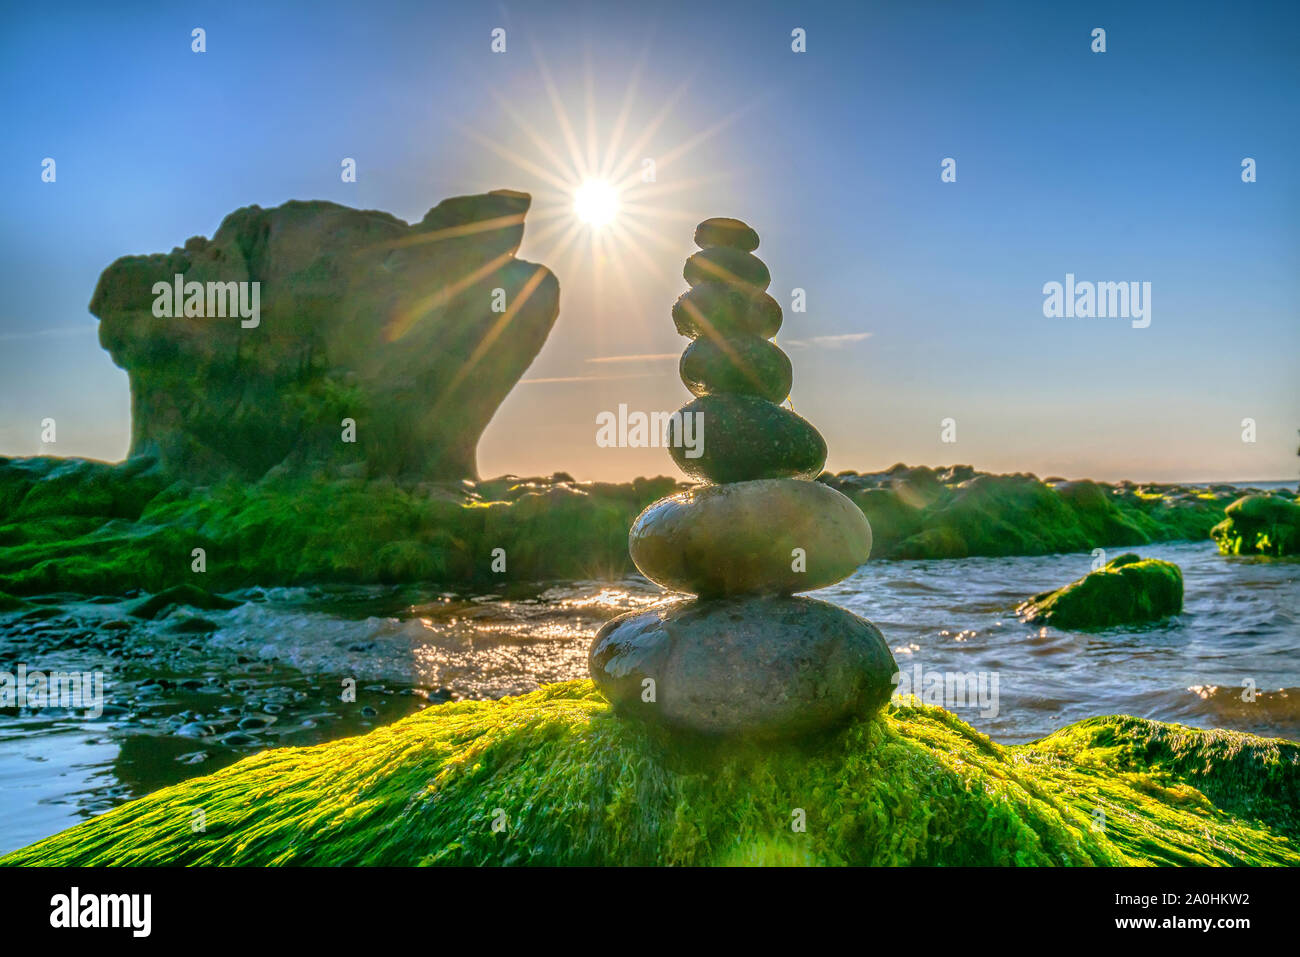 Stacked Pebbles Art On Mossy Rocks Welcomes Beautiful New Day